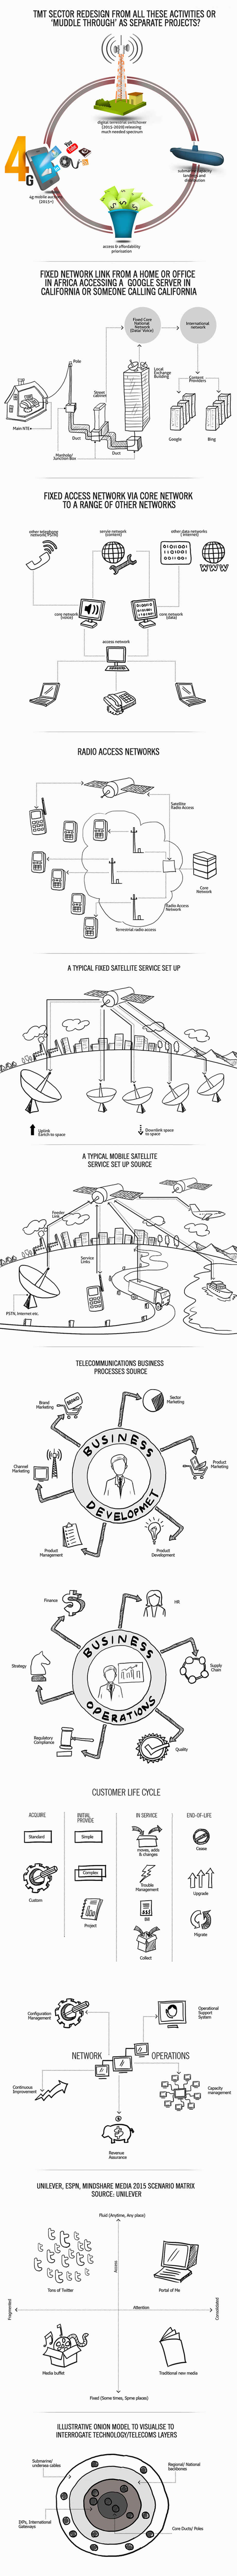 Business on Telecommunication Network Infographic